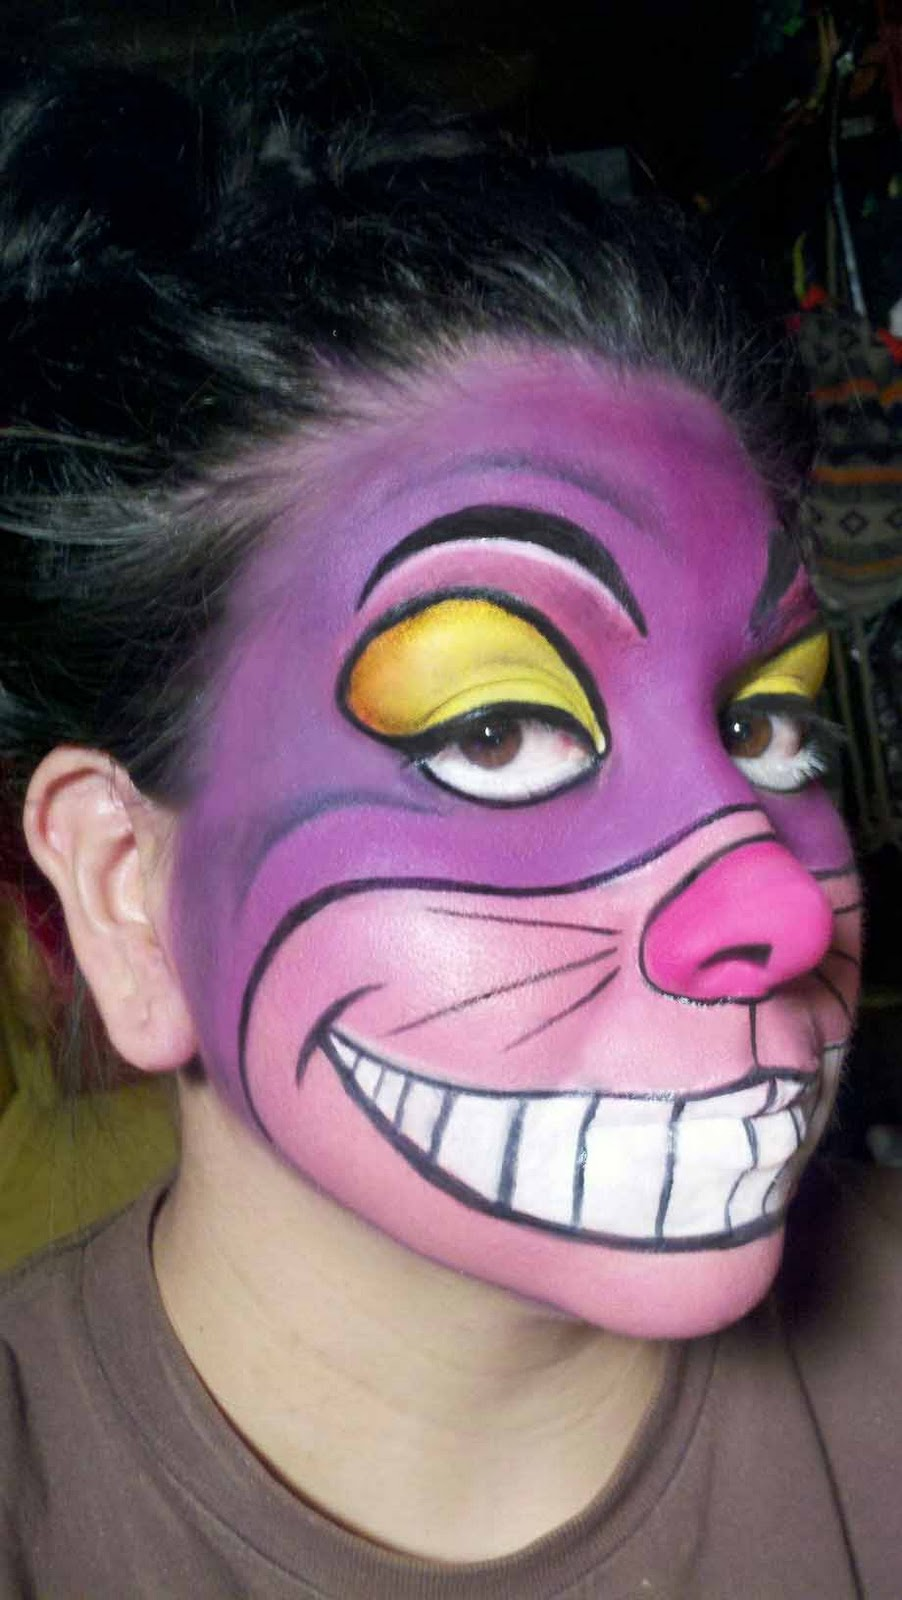 cheshire cat on pinterest cheshire cat costume cheshire cat makeup and alice in wonderland. Black Bedroom Furniture Sets. Home Design Ideas